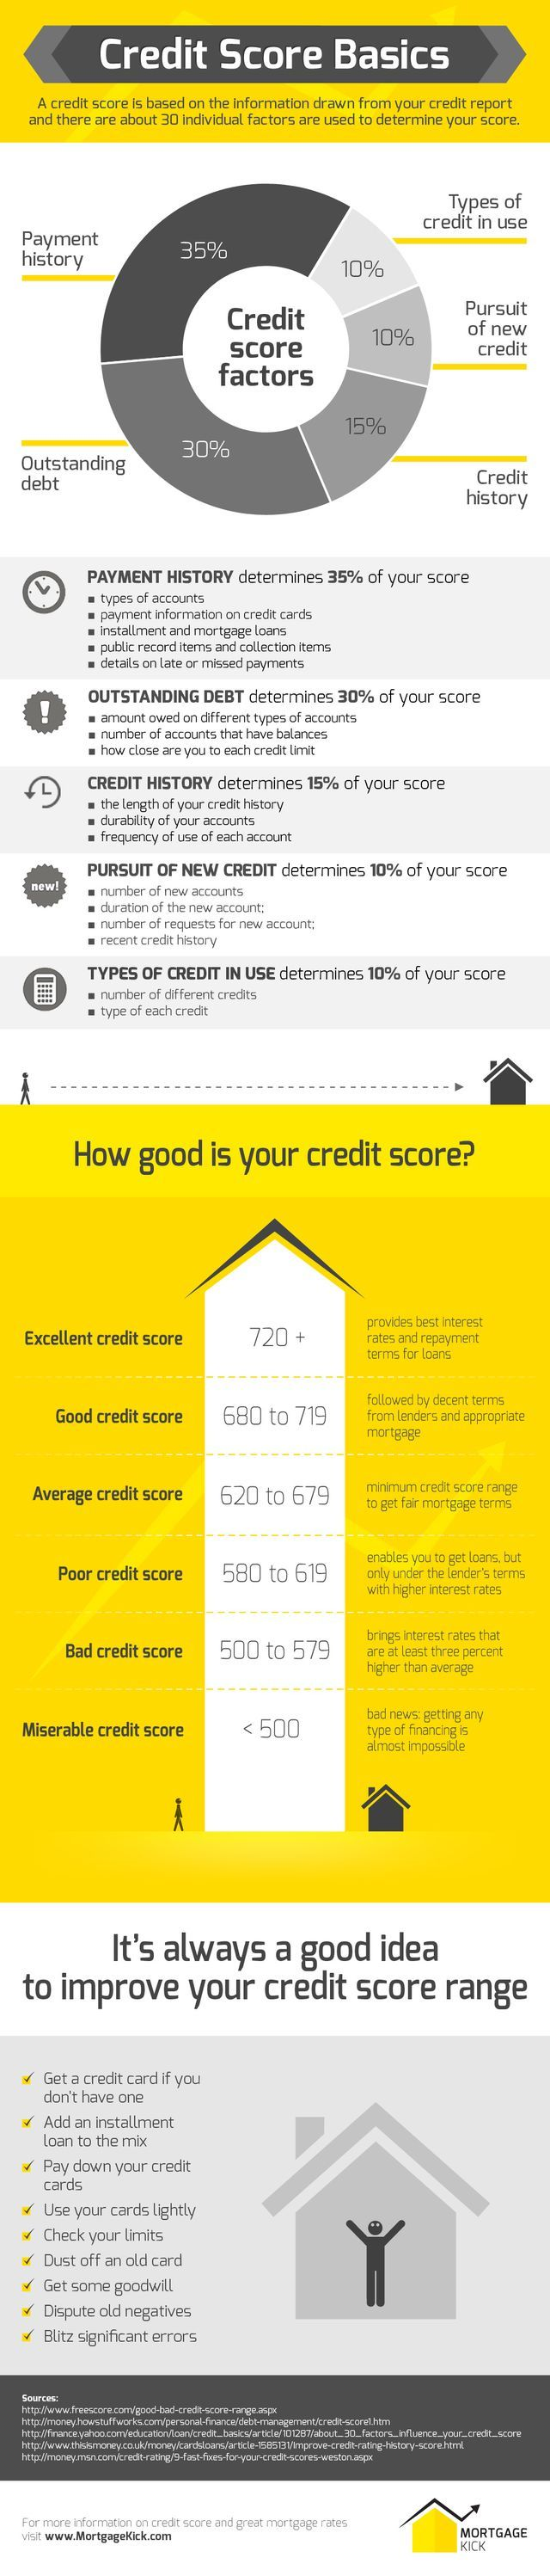 Credit Score Basics : Credit score is one of the most important factors when applying for a mortgage loan.What are most important factors and shares excellent tips on how you can keep a high credit score to get approved for a mortgage.